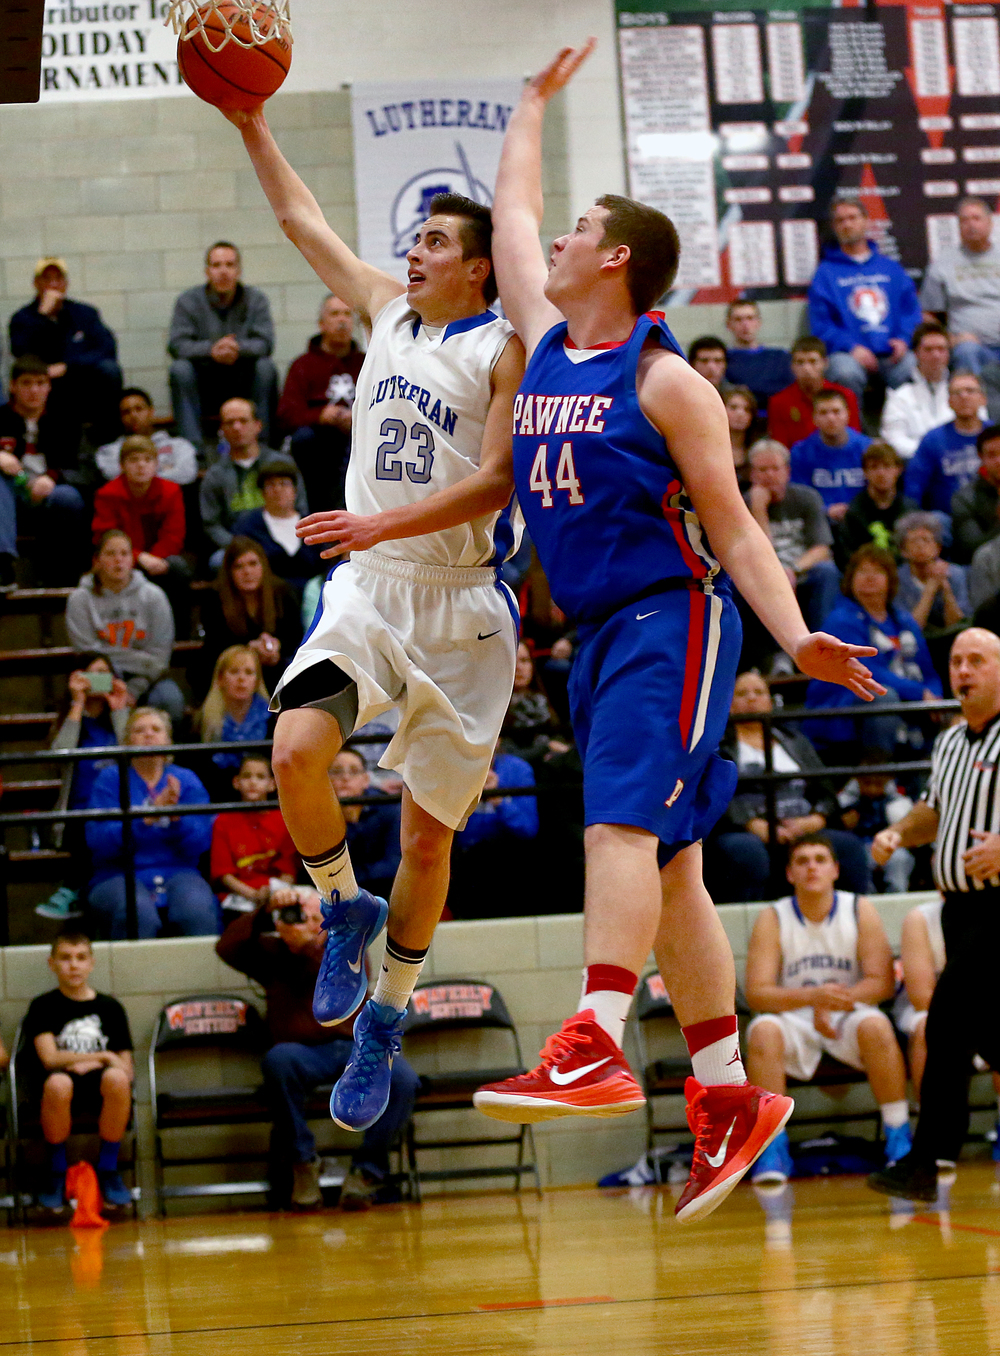 Lutheran's Steven Cowels (23) is fouled by Pawnee's Reese Bourne (44) as he goes up for a shot in the second half during the semifinals of the 64th annual Waverly Holiday Tournament at Waverly Grade School, Monday, Dec. 29, 2014, in Waverly , Ill. Justin L. Fowler/The State Journal-Register